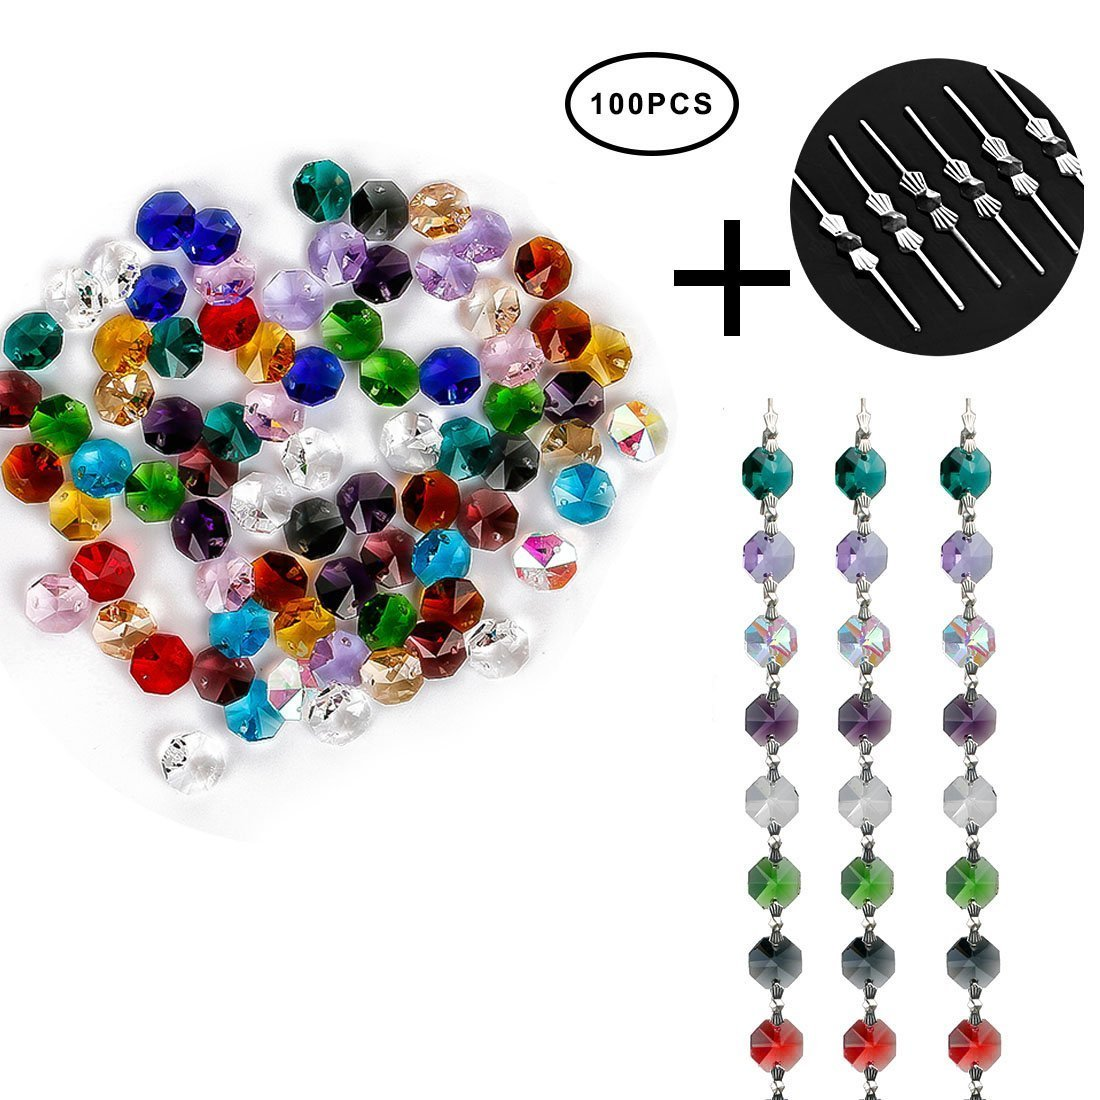 H&D 100pcs Multi color Crystal Glass 14mm Octagon Chandelier Beads for Wedding Home Decor